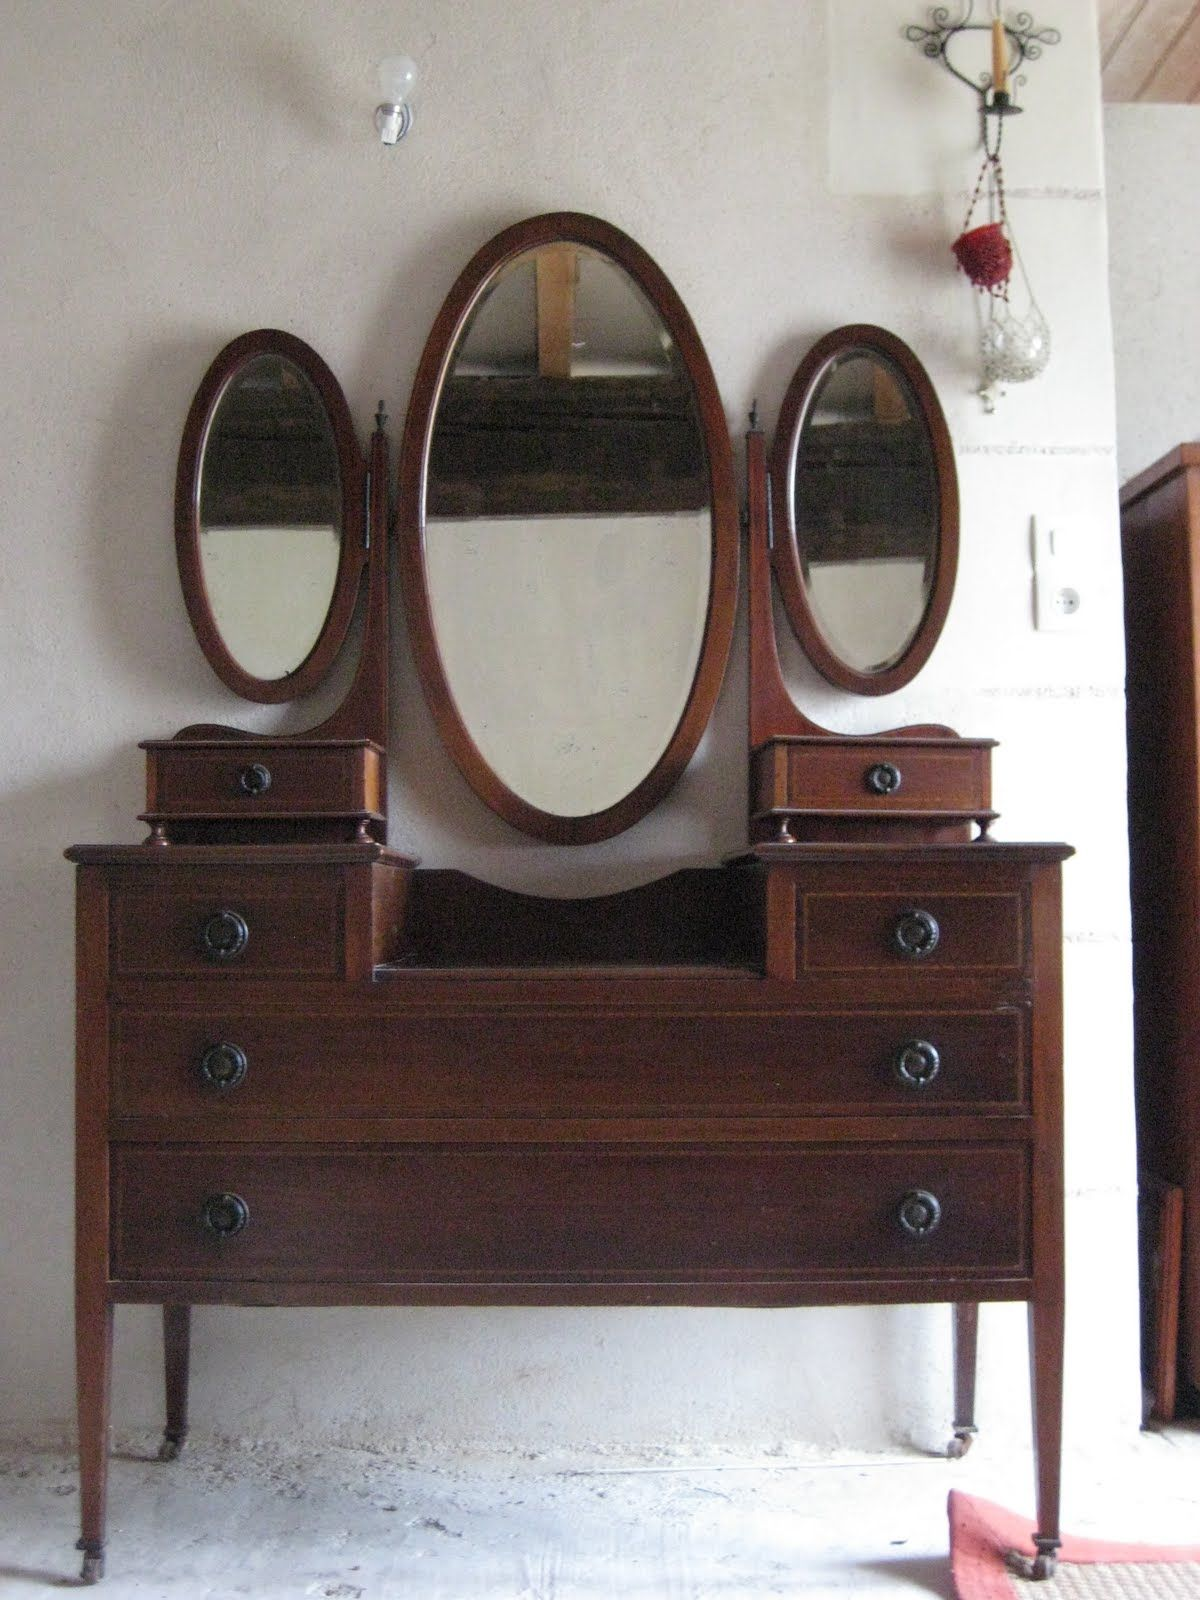 Dressing table with mirror triple oval dressing table mirror  bedroom design  pinterest